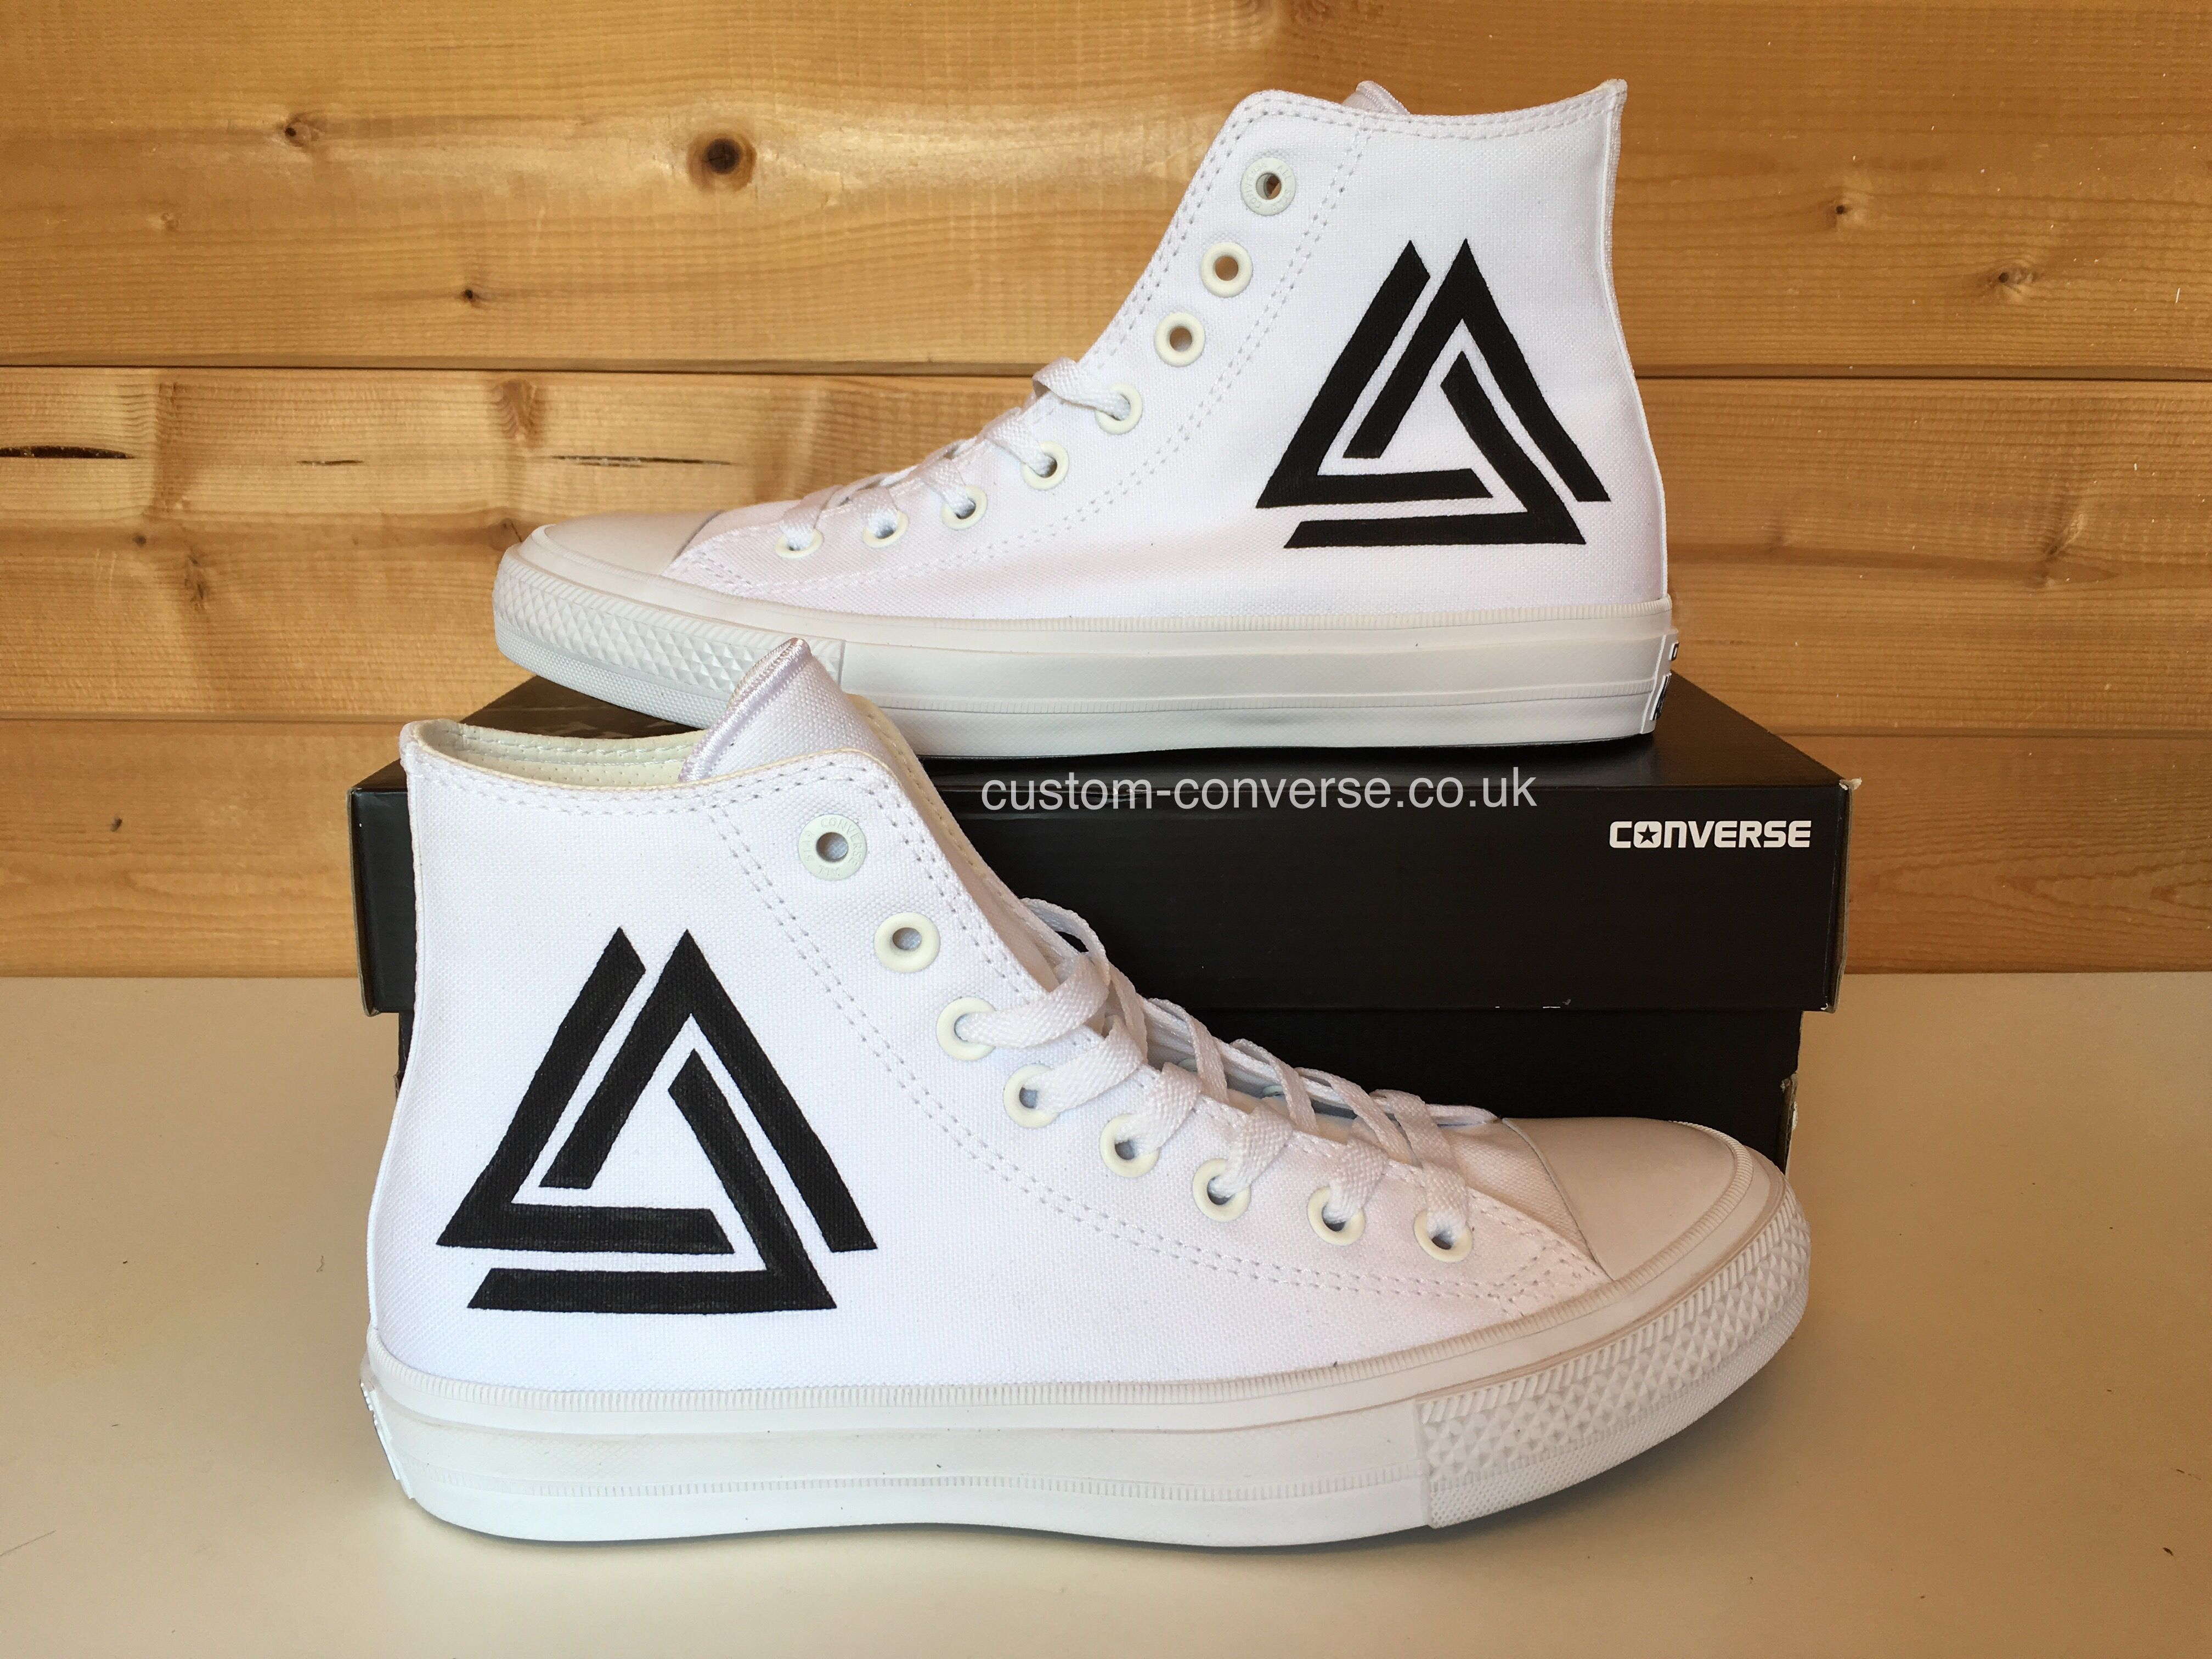 converse shoes nearby breakfast burrito